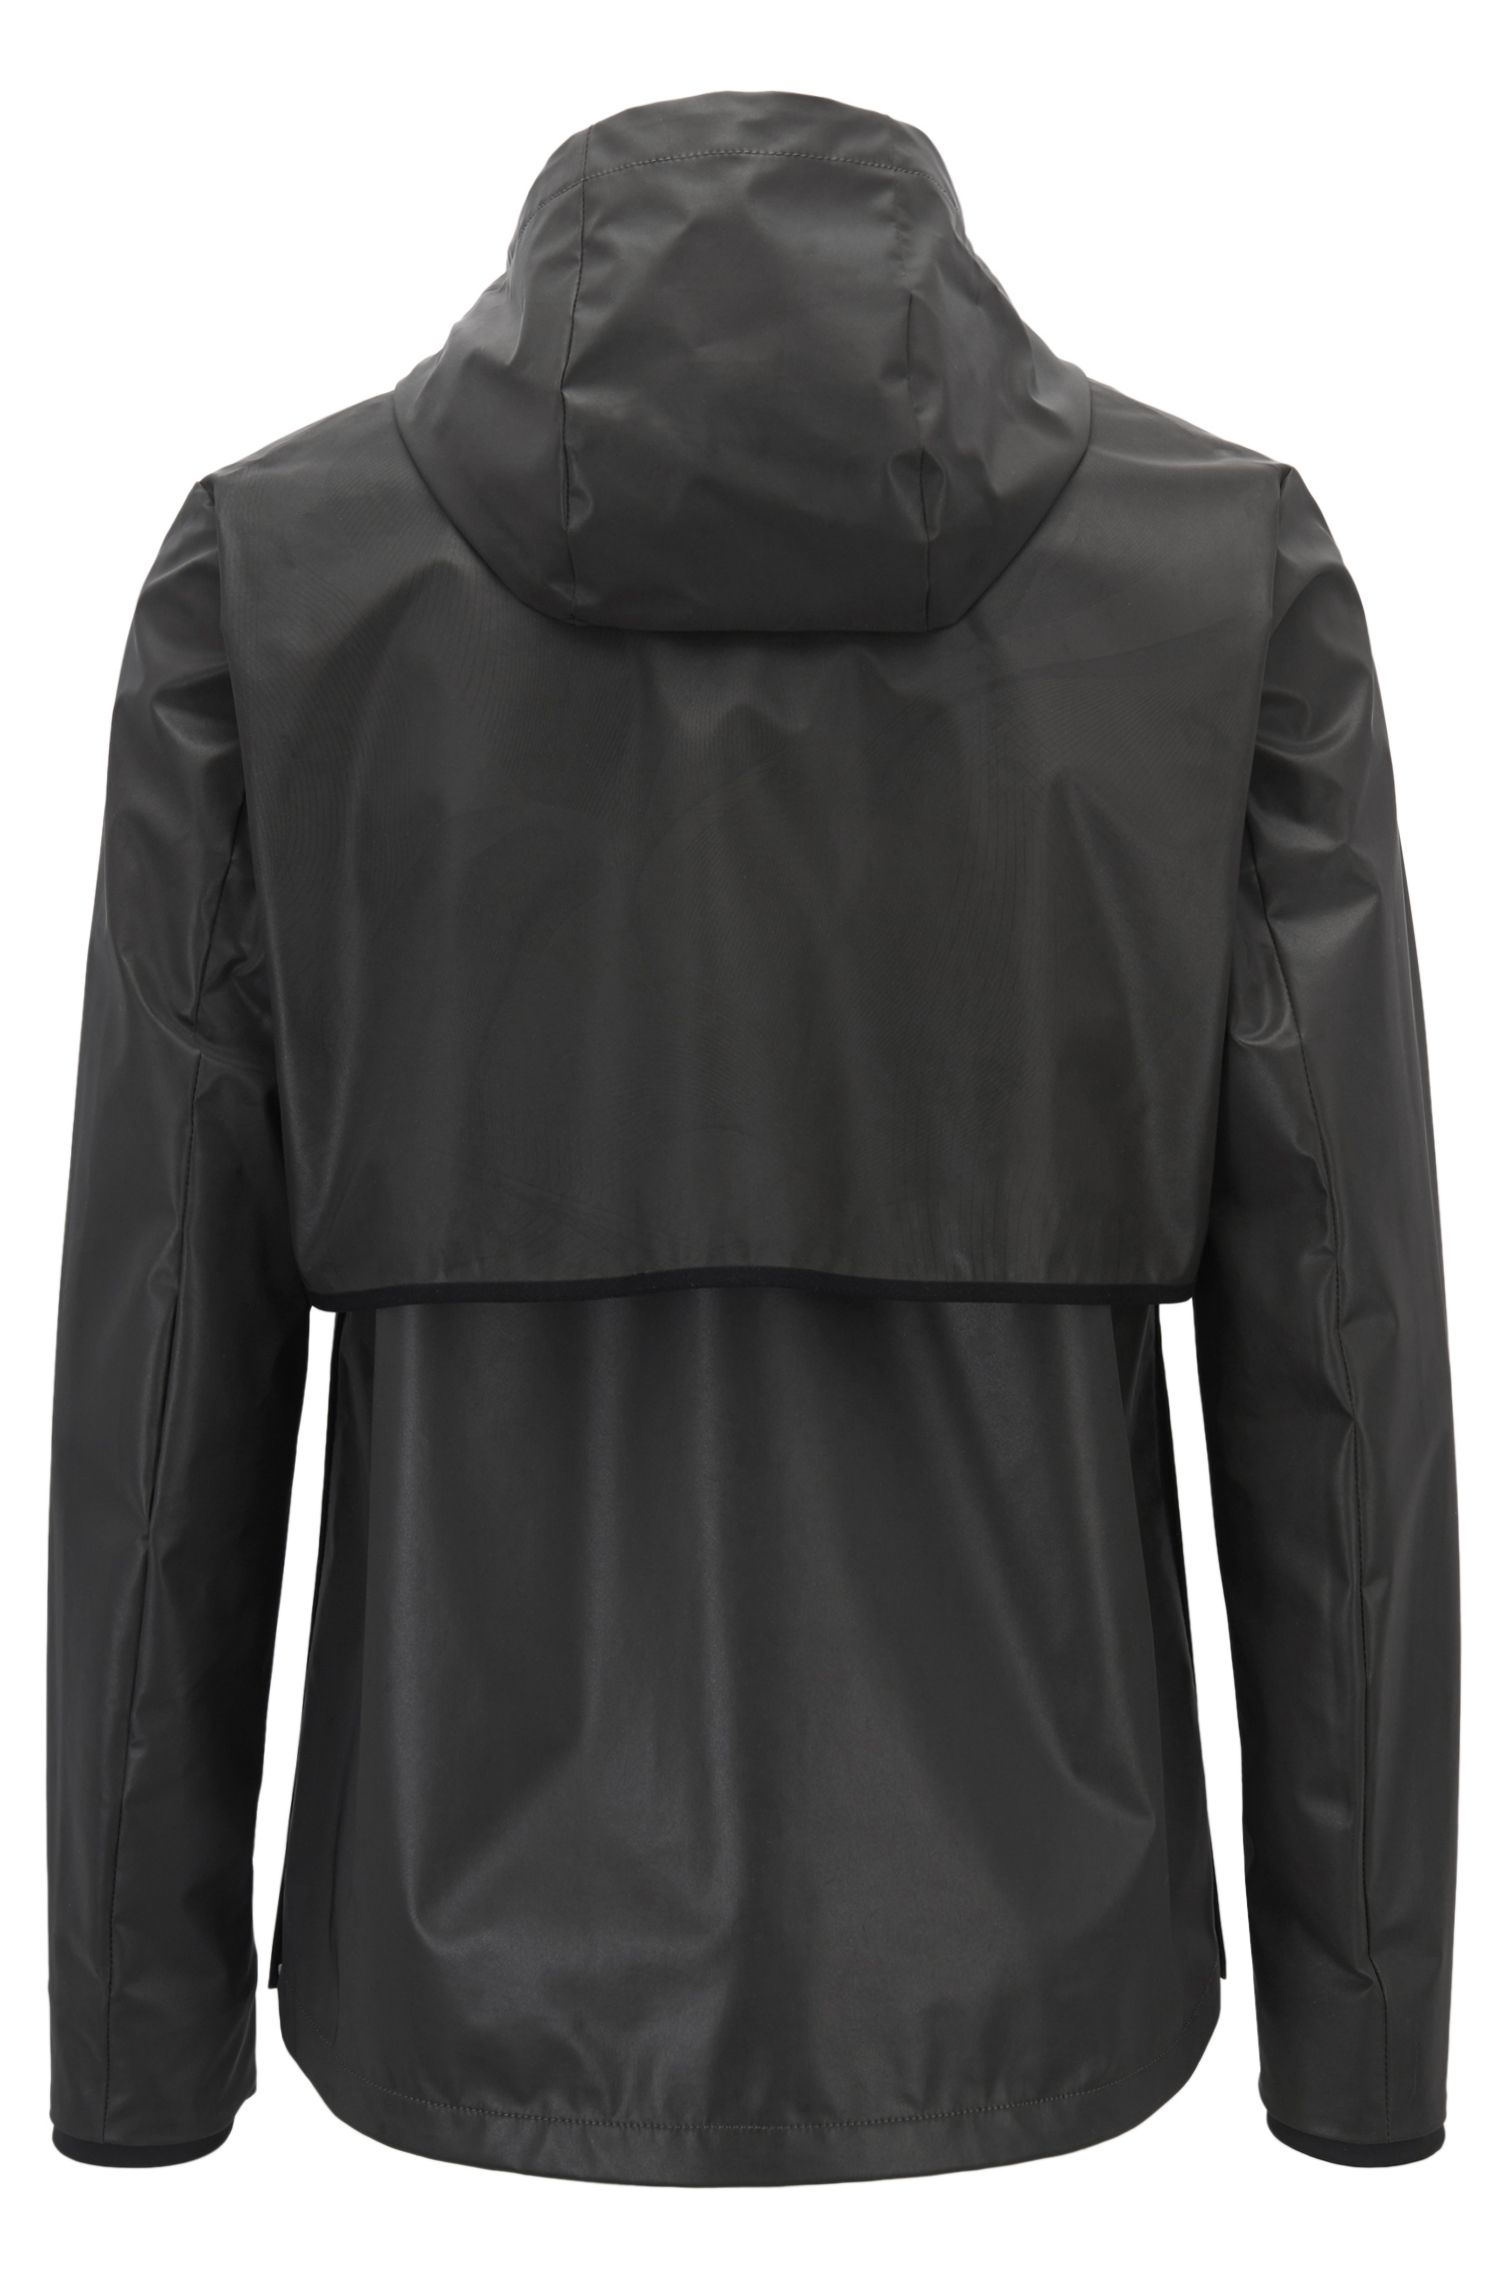 Reflecterende softshell jas van waterafstotend materiaal